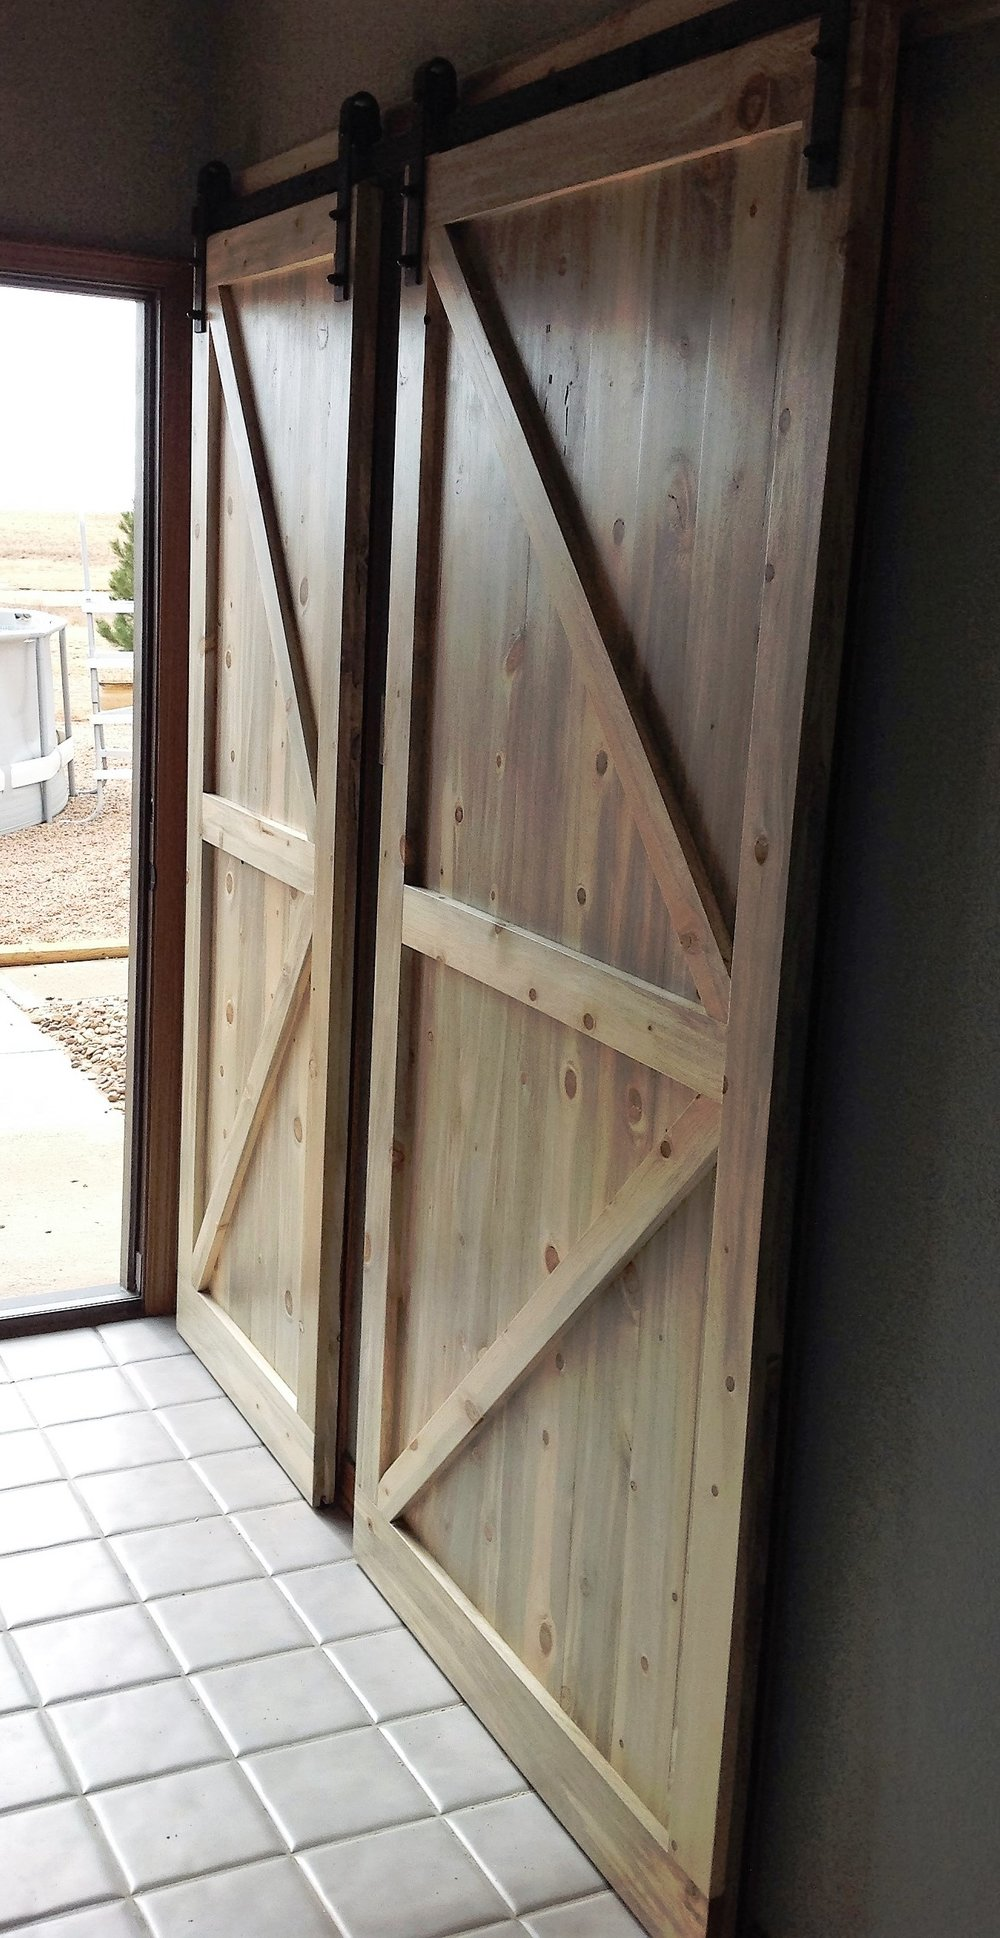 mirror barns finish product hardware wood steel doors storage new door barn with stainless handle sliding photo modern text